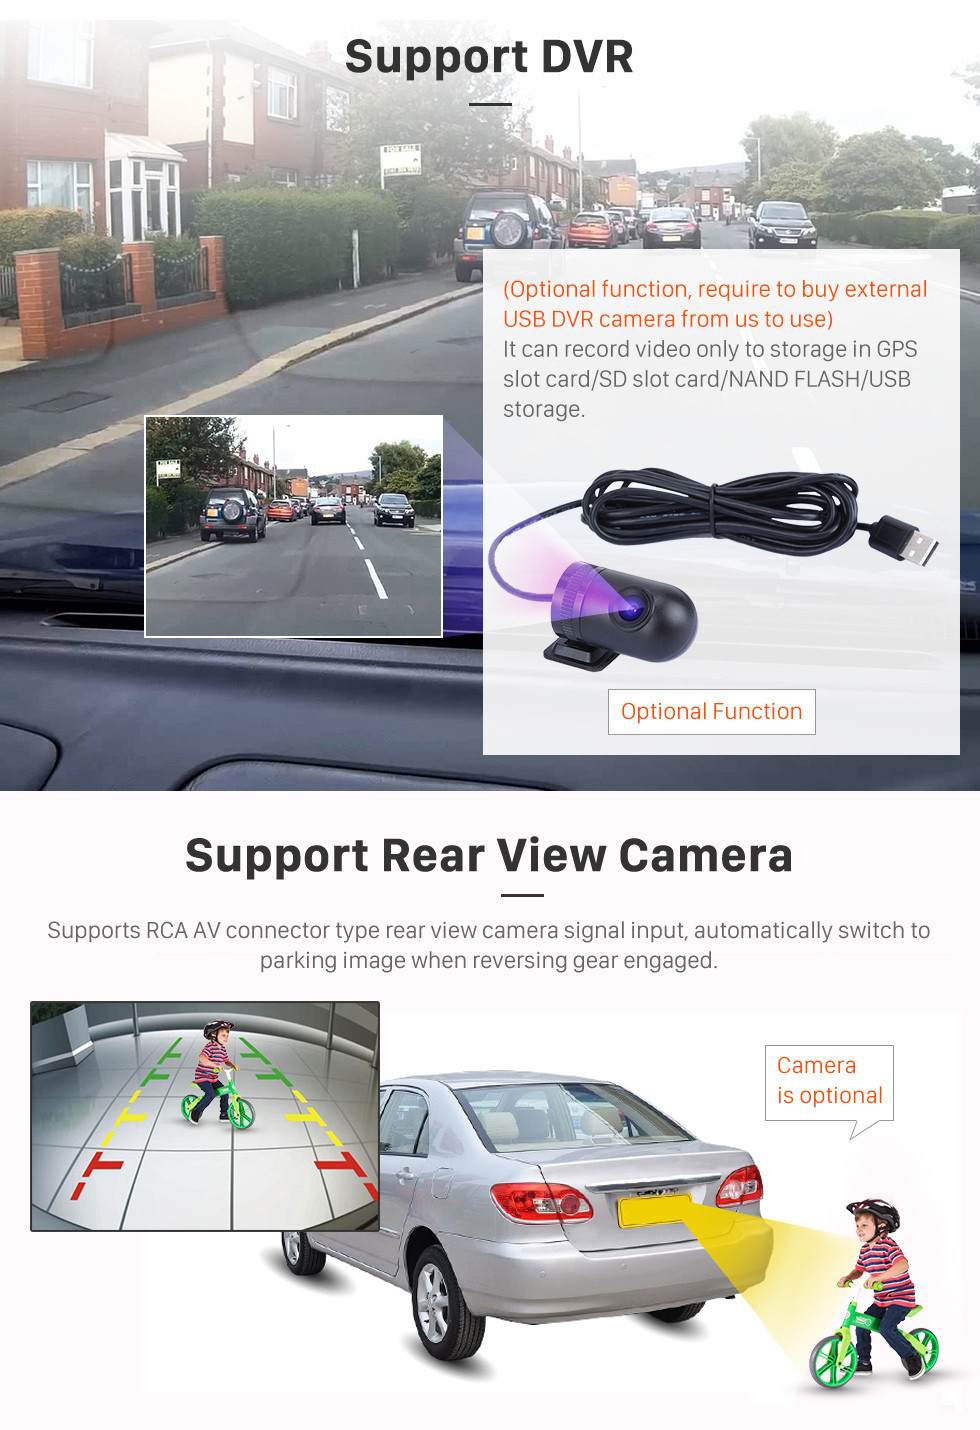 Seicane 10.1 inch Android 9.0 Radio for 2012 Proton Myvi Bluetooth Wifi HD Touchscreen GPS Navigation Carplay USB support DVR OBD2 Rearview camera